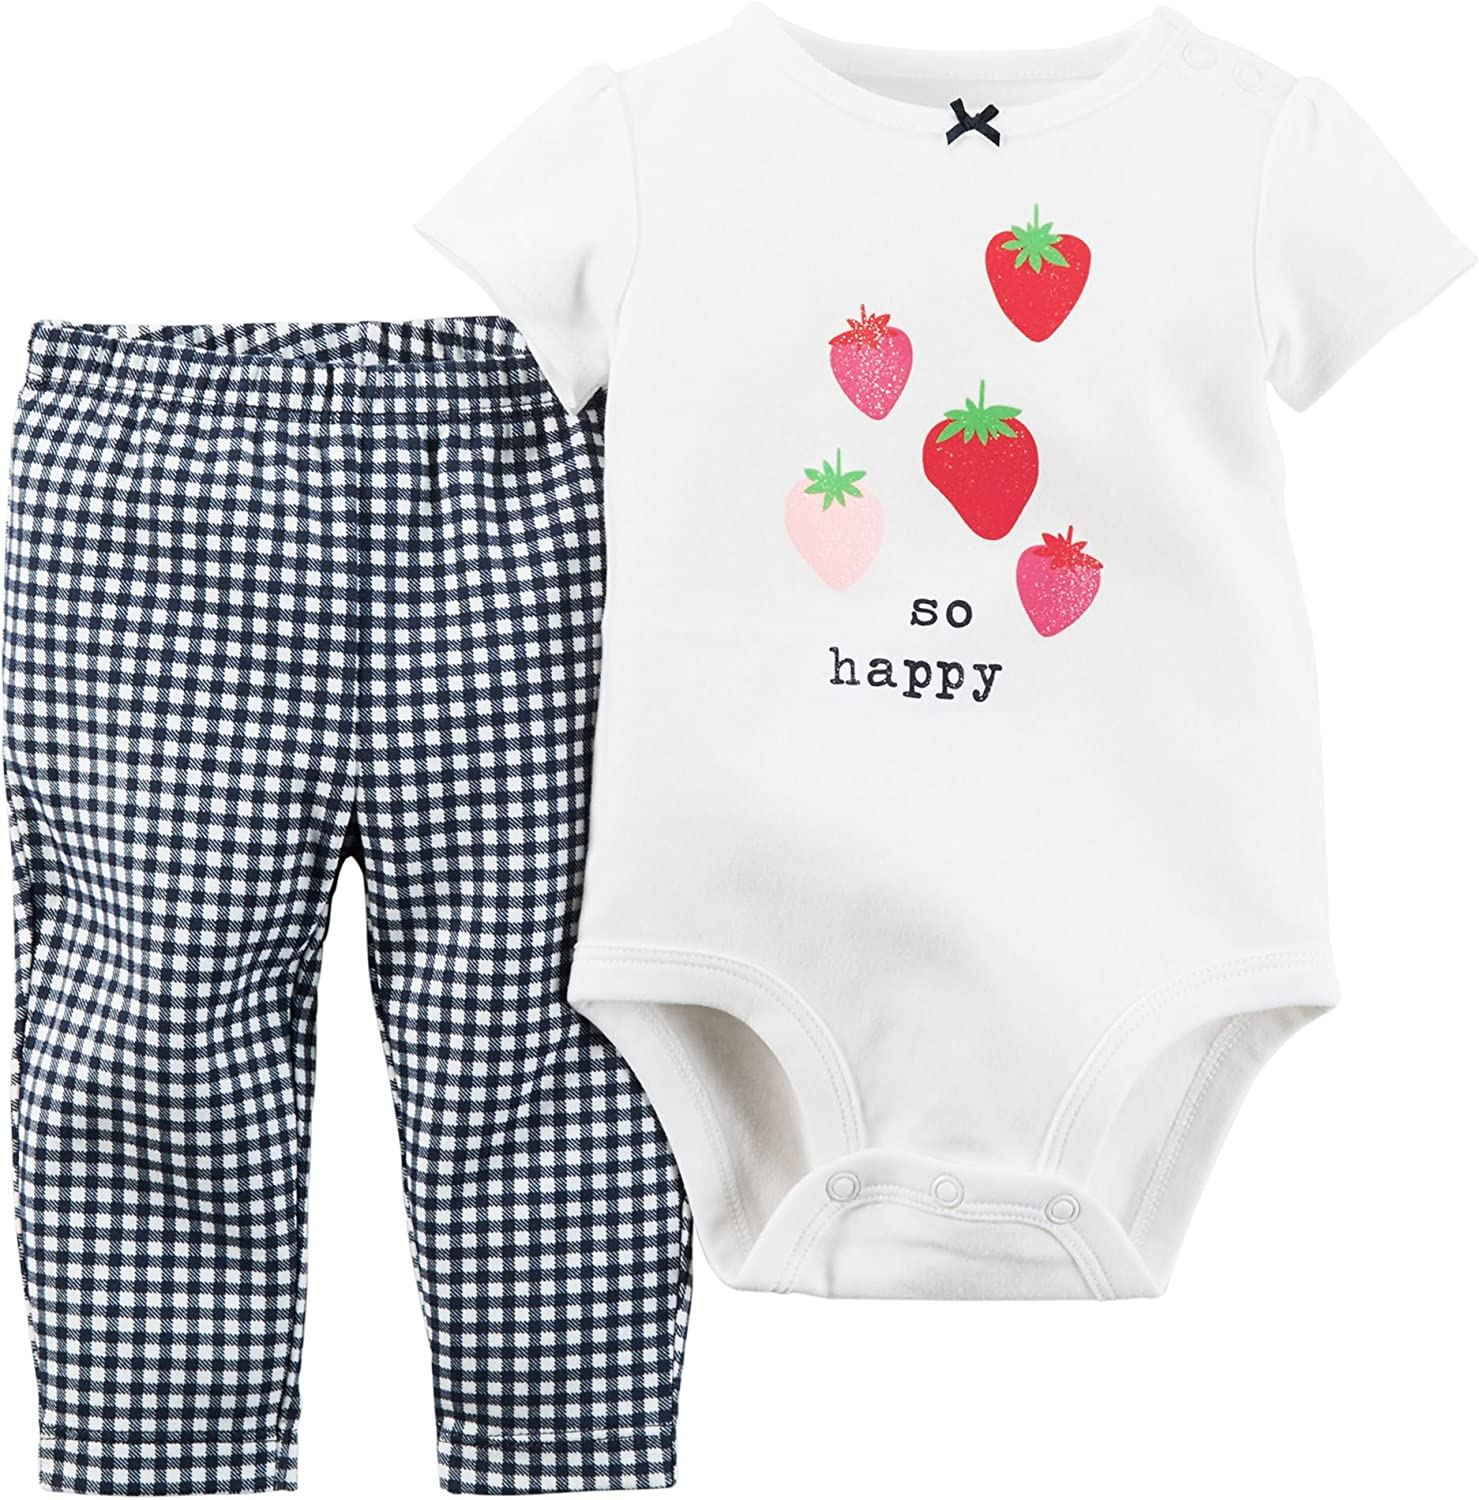 Carter's Baby Clothing Outfit Girls 2-Piece Bodysuit & Pant Set So Happy White 18M